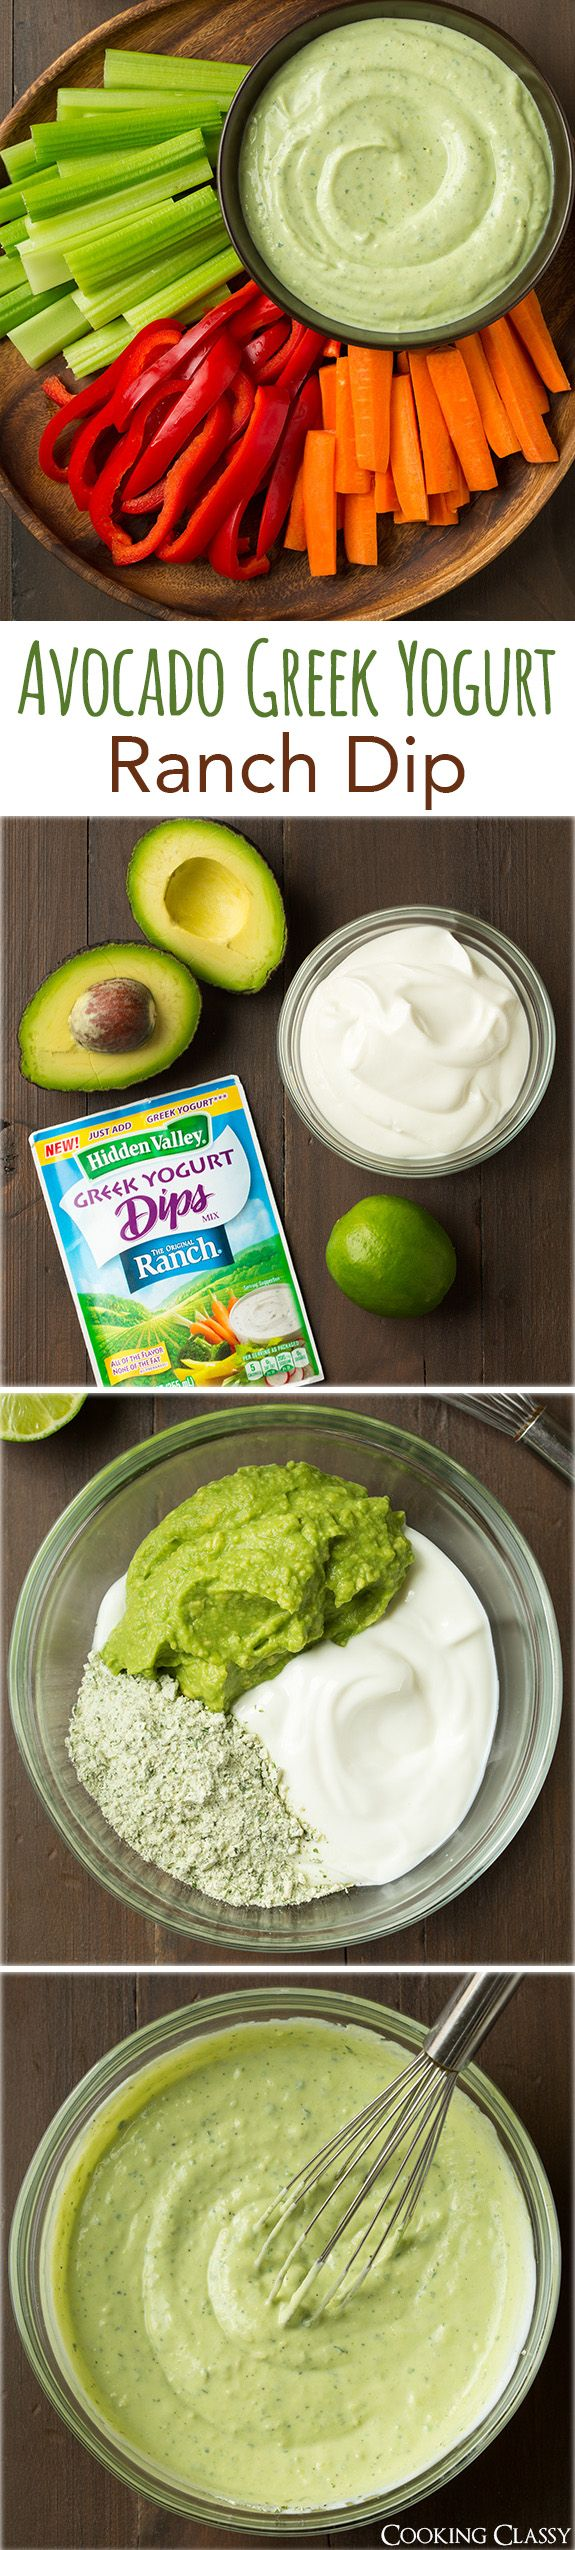 Avocado Greek Yogurt Ranch Dip –  only 4 ingredients and a breeze to make! So delicious, even my kids loved it! It's so good as a